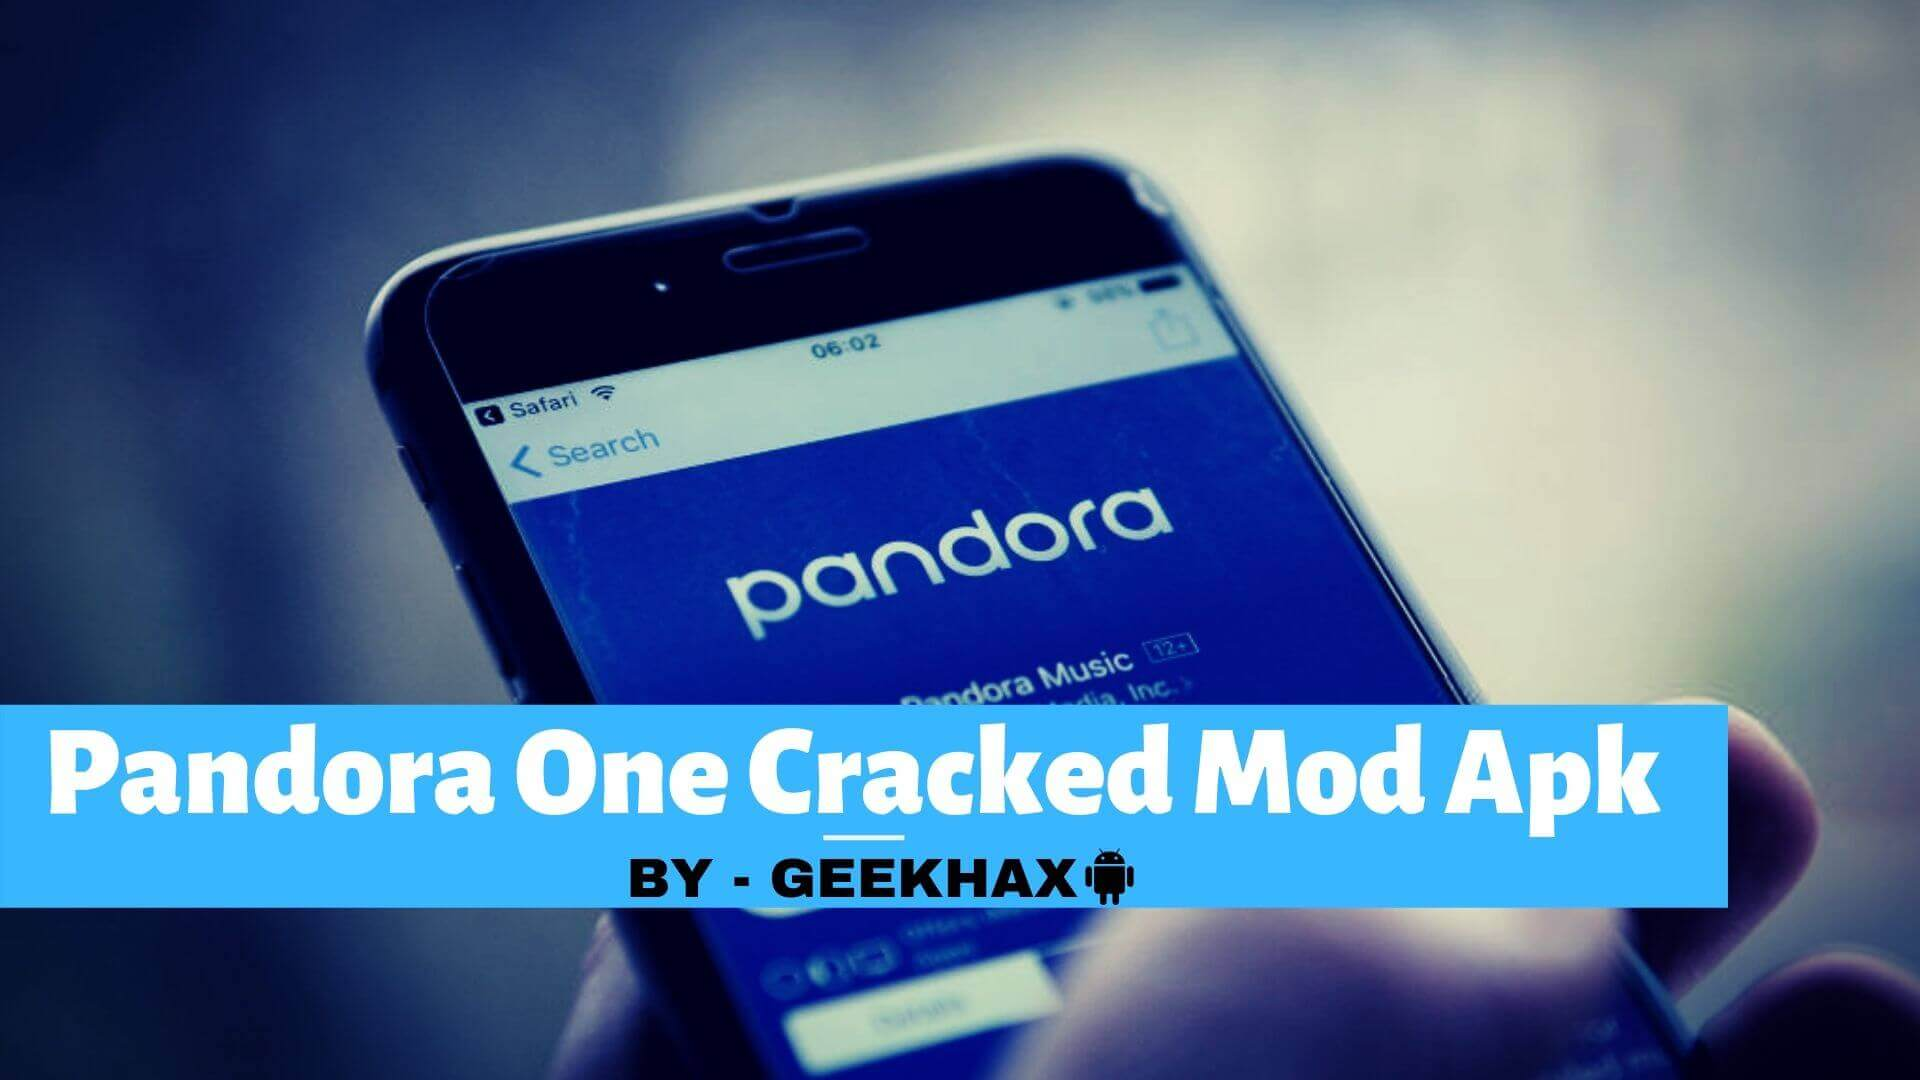 Pandora One Cracked Mod APK Free Download With Unlimited Skips